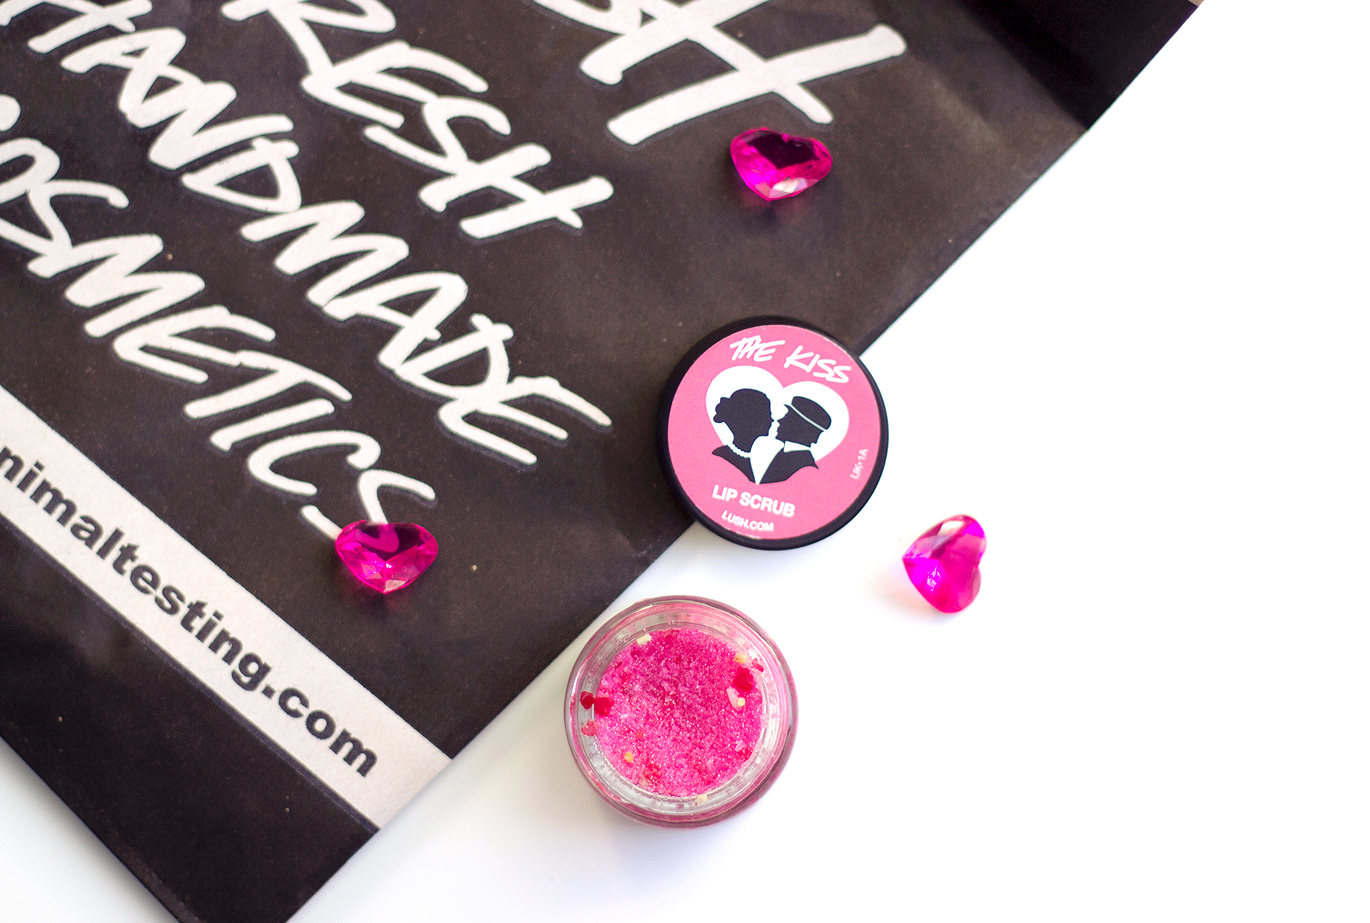 Lush The Kiss Lip Scrub, Lush The Kiss Lip Scrub Valentines 2015, Lush The Kiss Lip Scrub Valentines, Lush 2015 Valentines, Lush The Kiss Lip Scrub Review, Lush The Kiss Lip Scrub Beauty Blog,